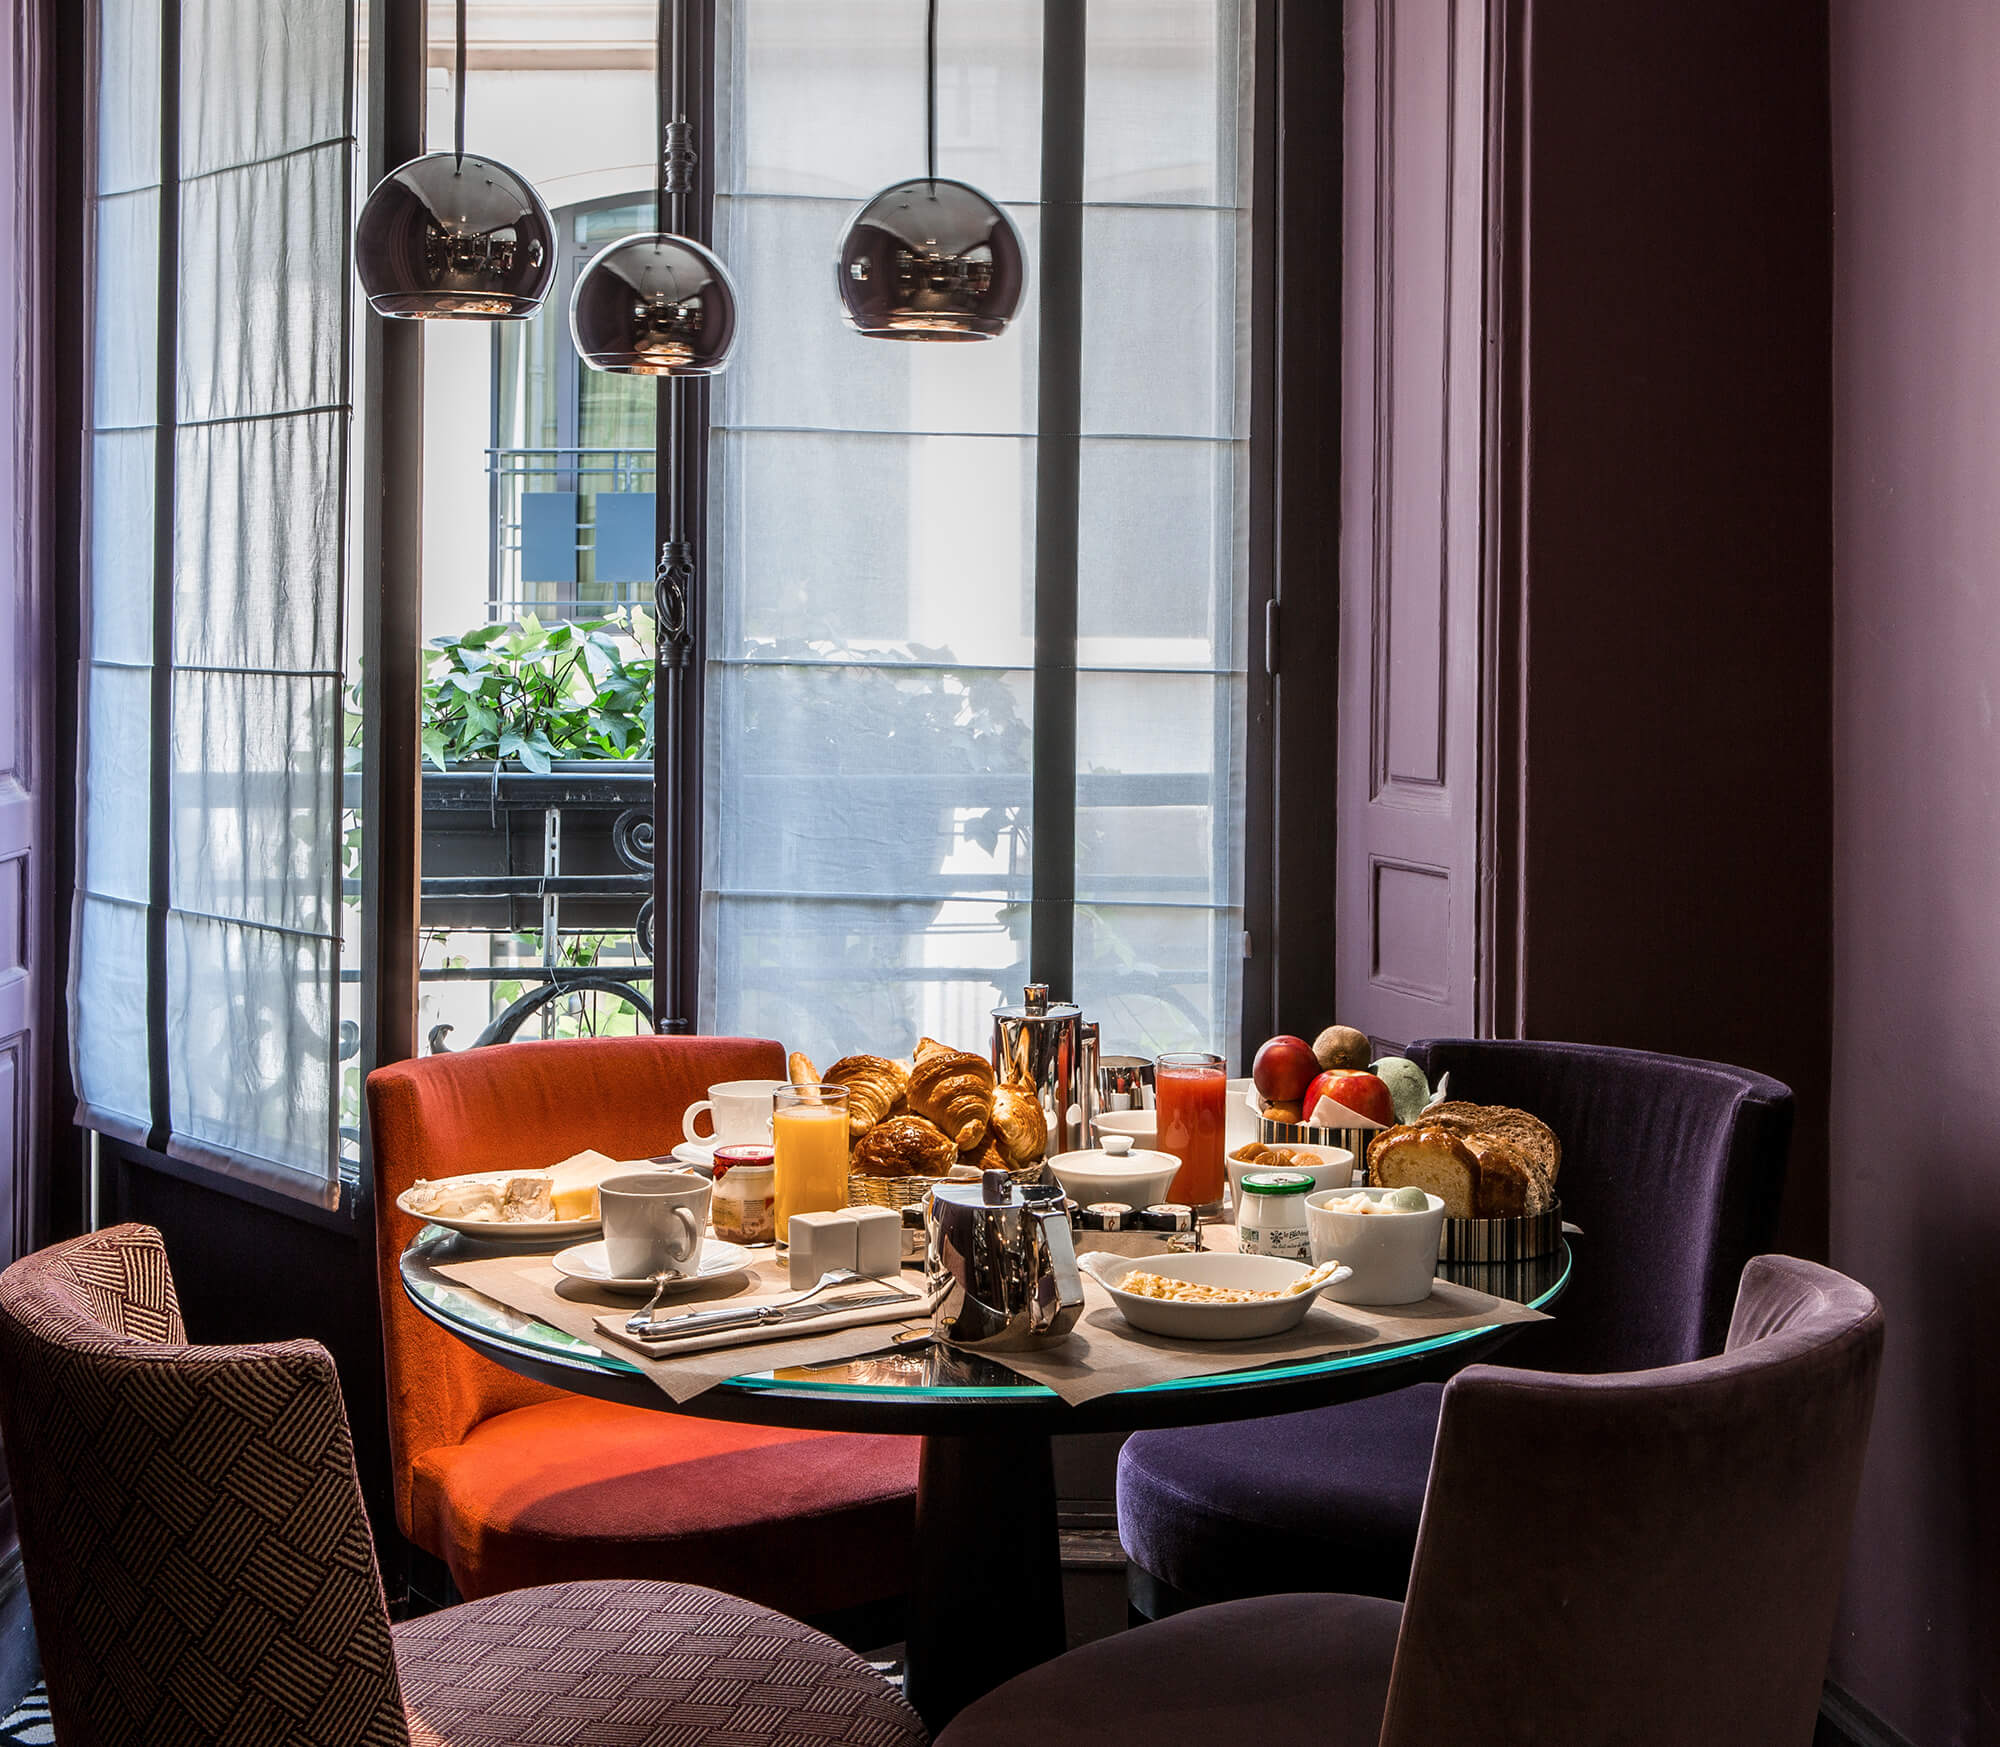 Hotel breakfast at Hotel Mansart Paris Vendome Opera